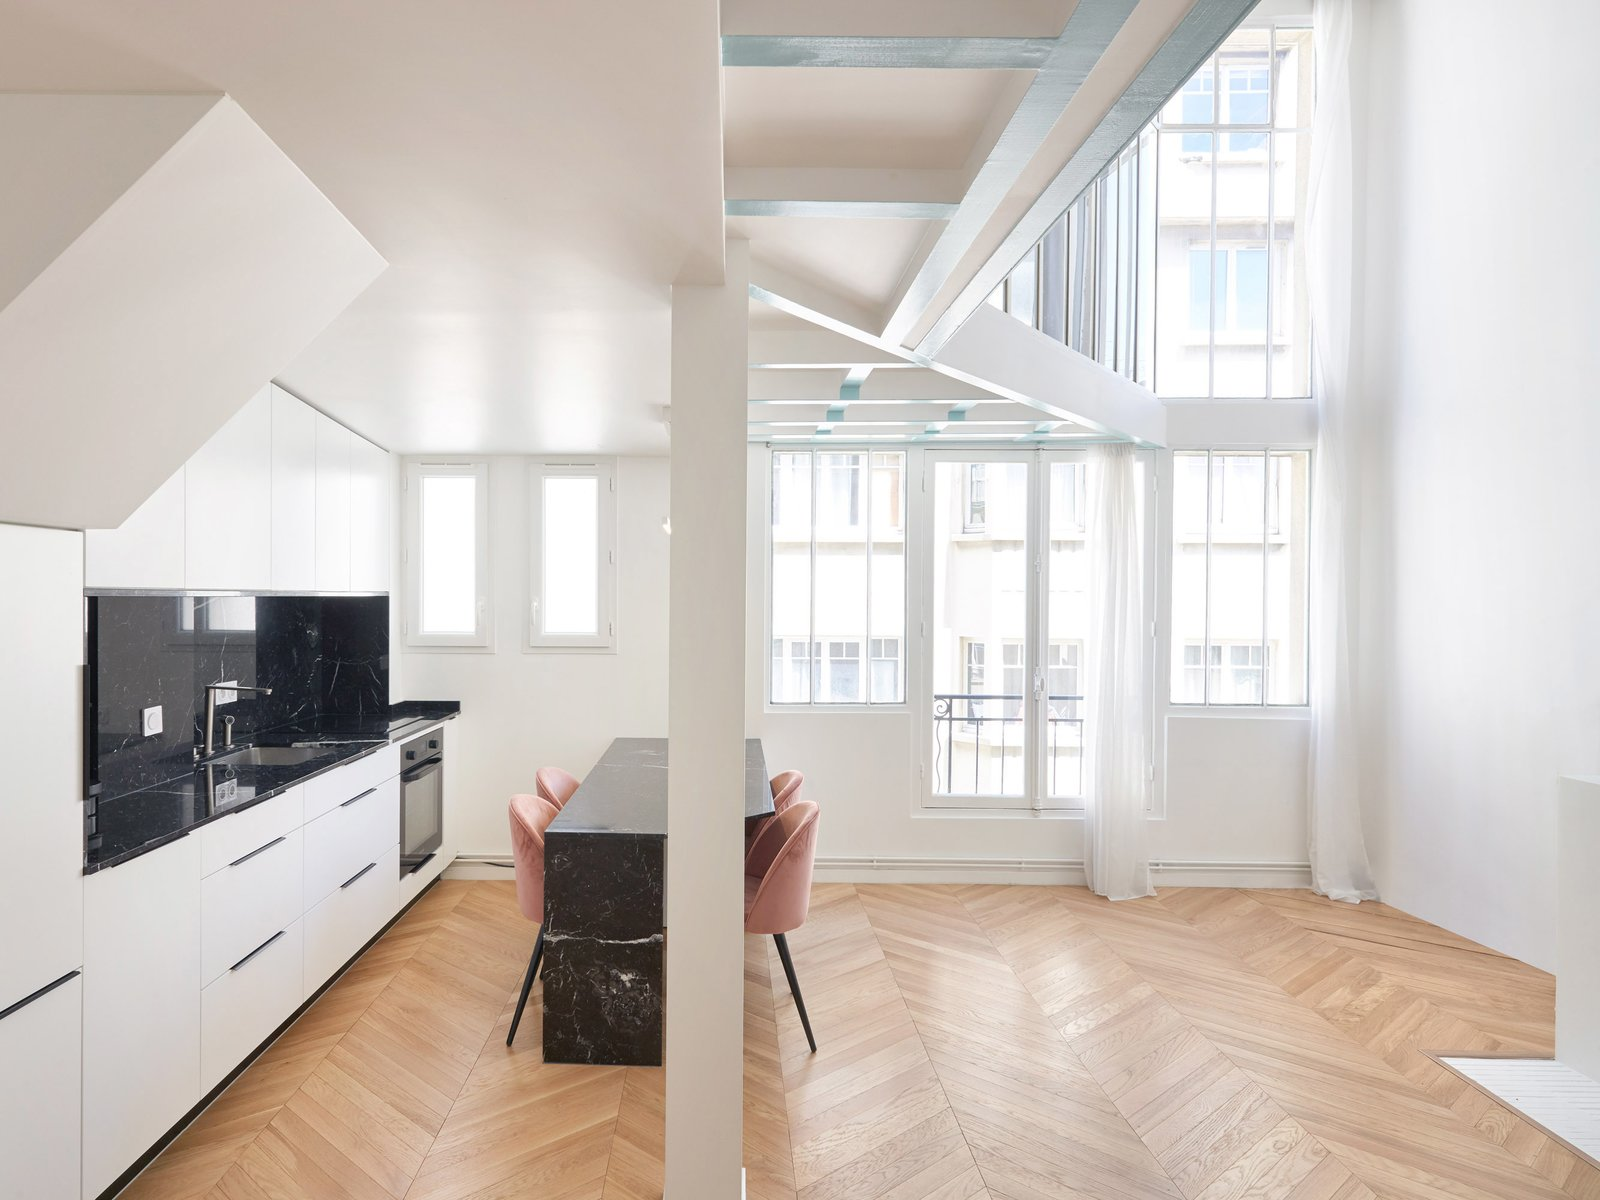 Kitchen, Wall Oven, White, Marble, Light Hardwood, Marble, and Drop In The angled mezzanine allows for a sunlight-filled kitchen-and-dining space, where oak parquet floors lend warm texture.  Best Kitchen Marble Wall Oven Photos from A Historic Paris Apartment Is Revived Using Sunlight and Bursts of Color